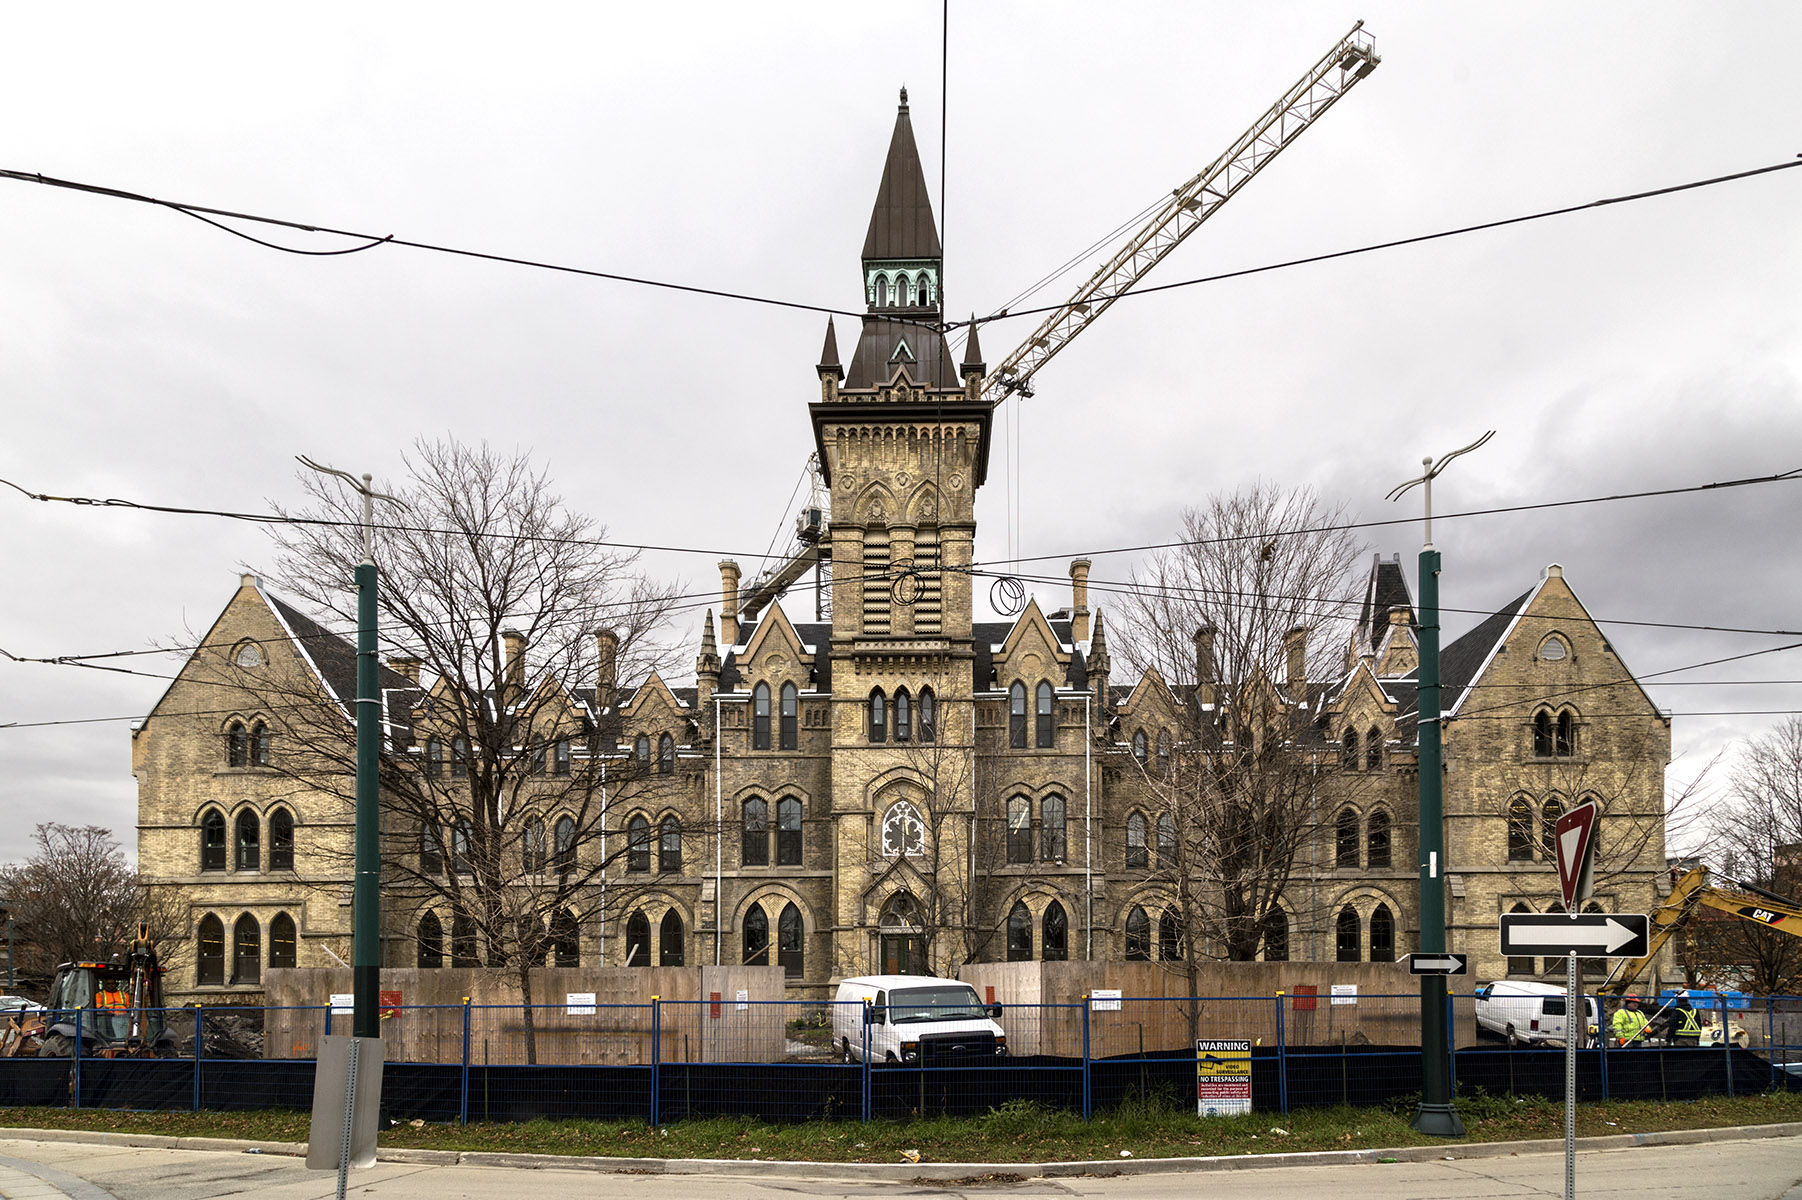 20151216. Renovations of the existing heritage building at Unive